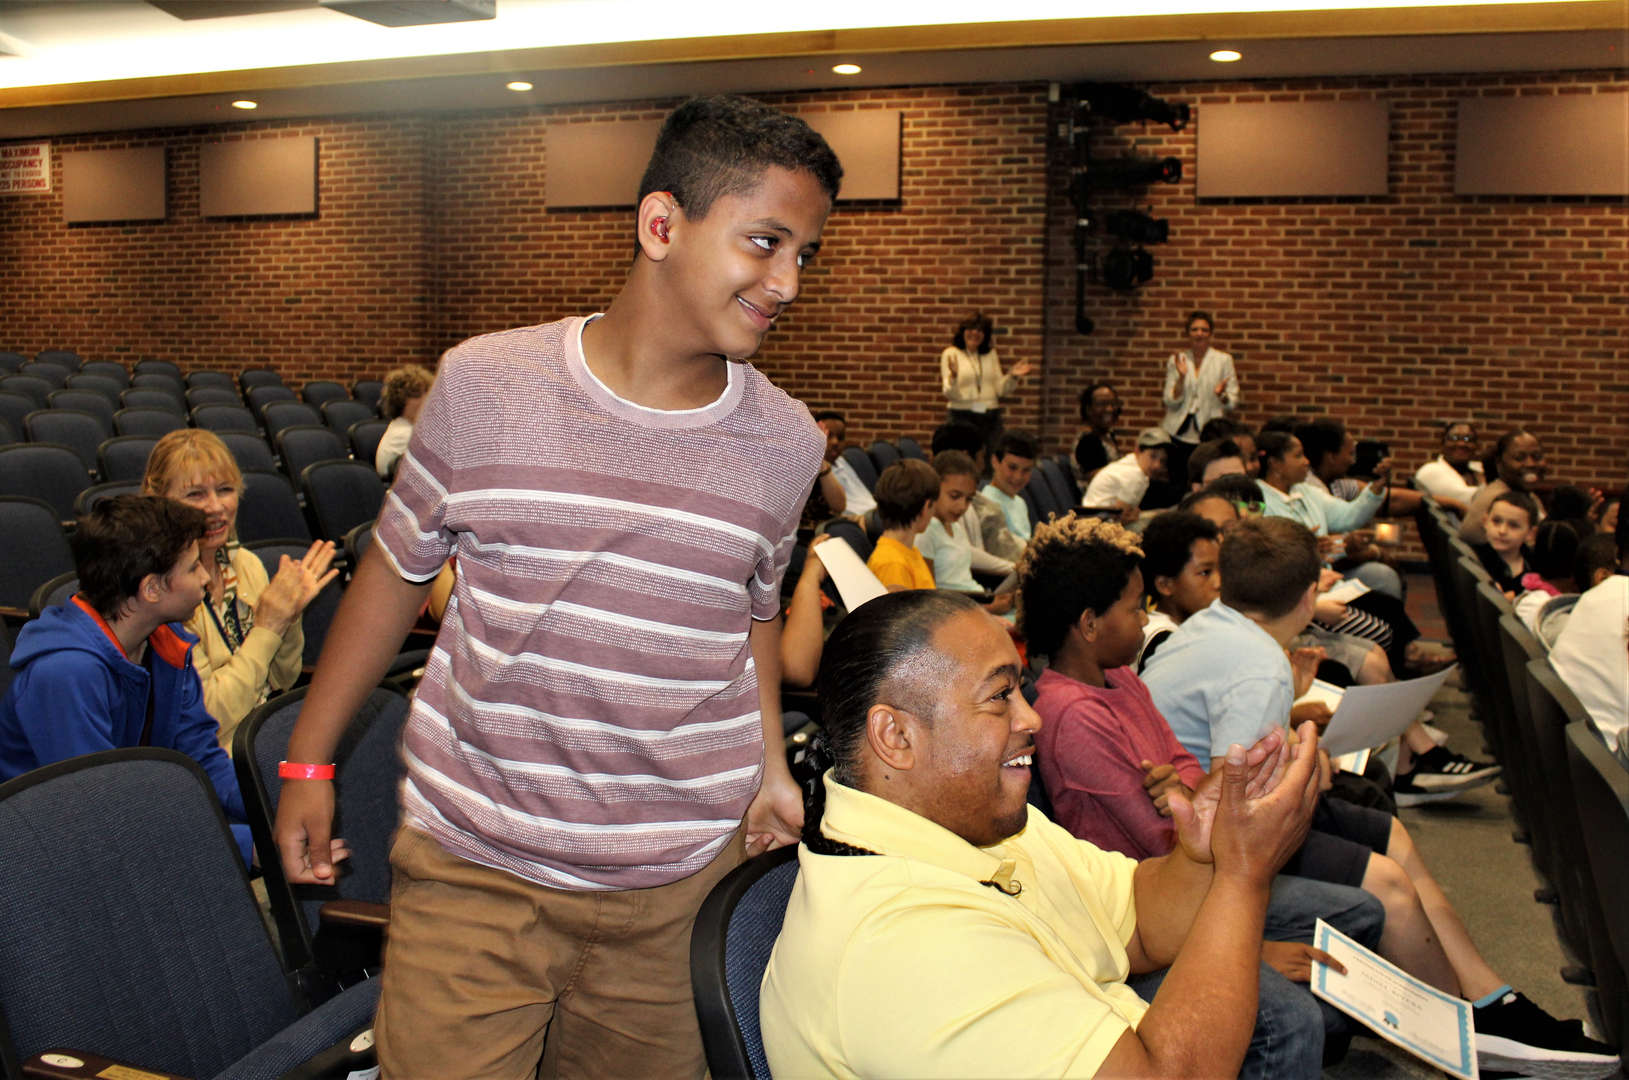 A student gets up from his seat to receive an award at the front of the auditorium.